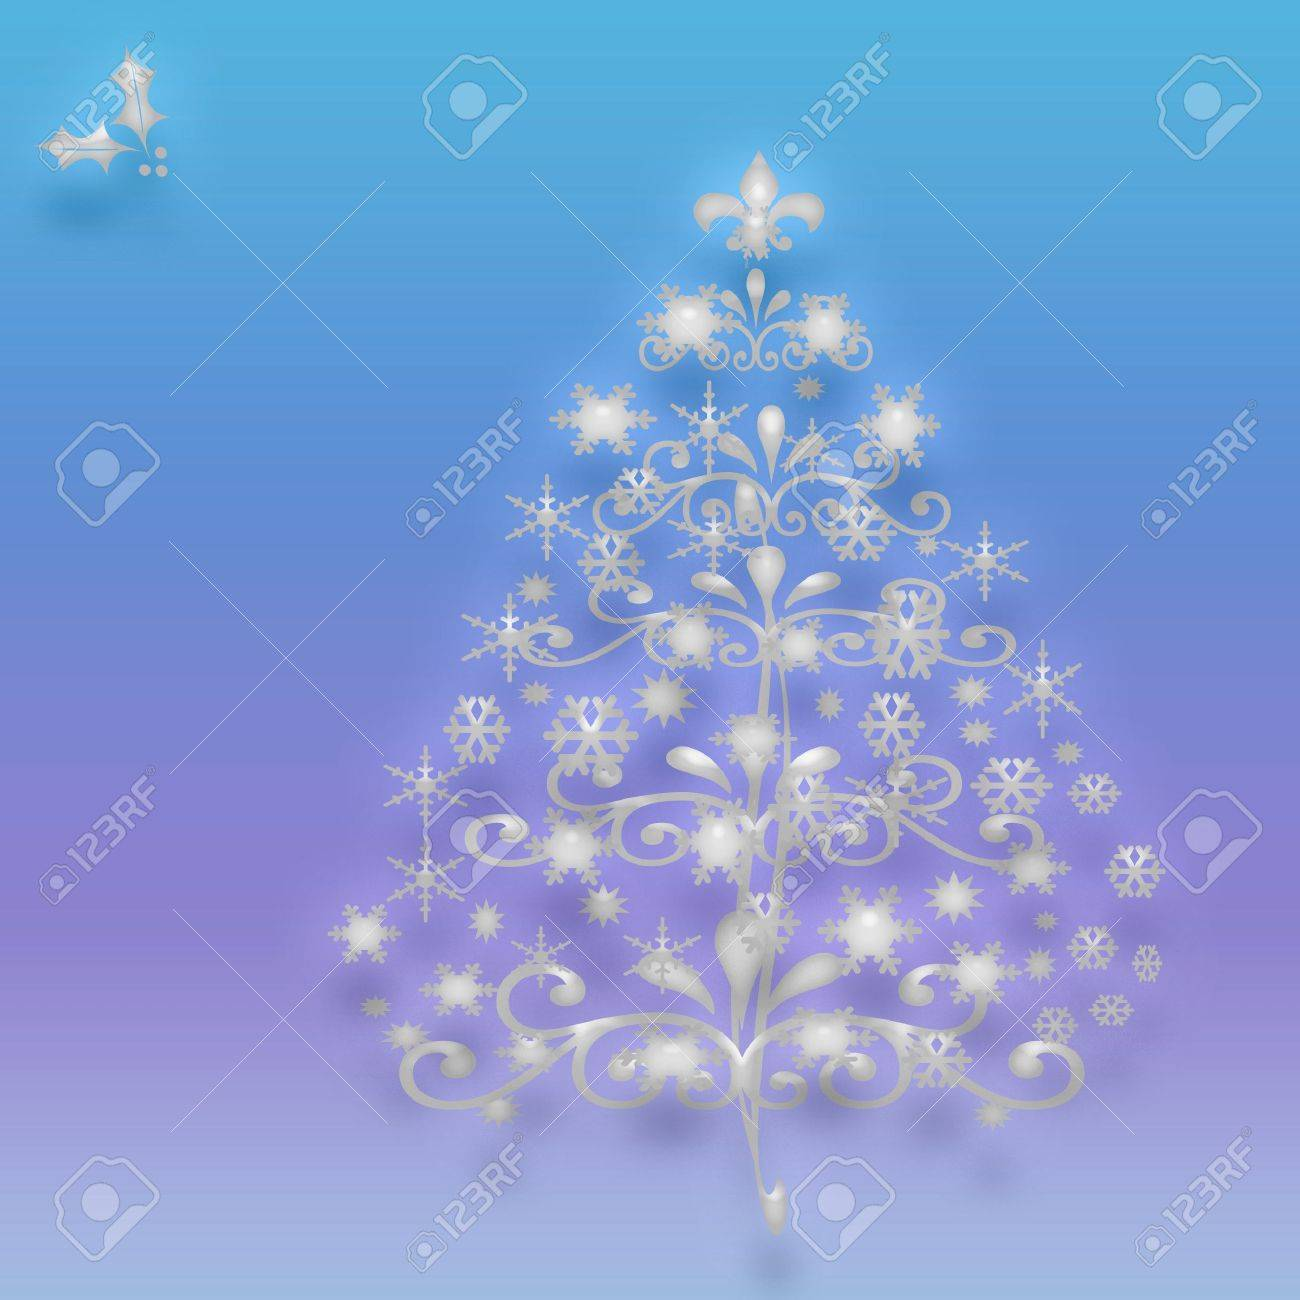 crystal christmas tree with ornaments on gradient background stock photo 1944882 - Crystal Christmas Trees